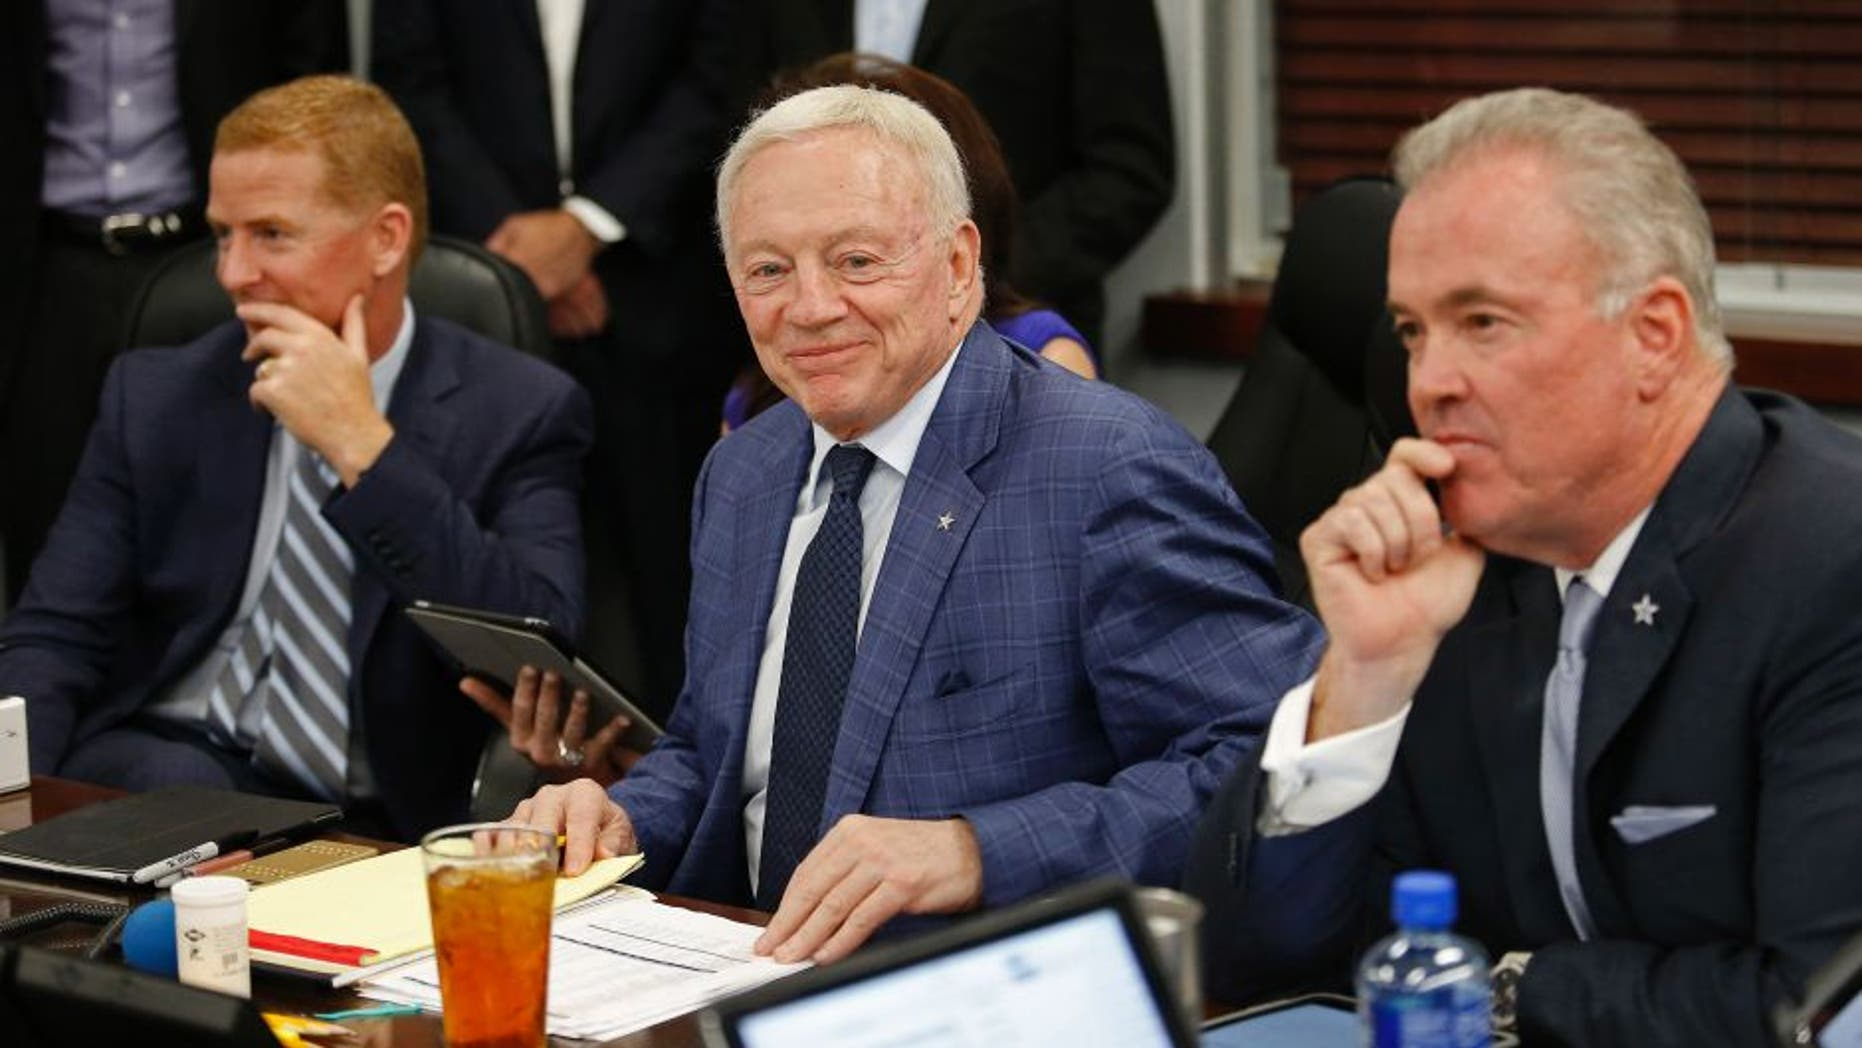 """Dallas Cowboys head coach Jason Garrett, left, team owner Jerry Jones and Stephen Jones, right, in the """"War Room"""" as the Cowboys take part in the NFL Draft on Thursday, April 28, 2016, at the team Headquarters at Valley Ranch in Irving, Texas. (Paul Moseley/Fort Worth Star-Telegram/TNS via Getty Images)"""